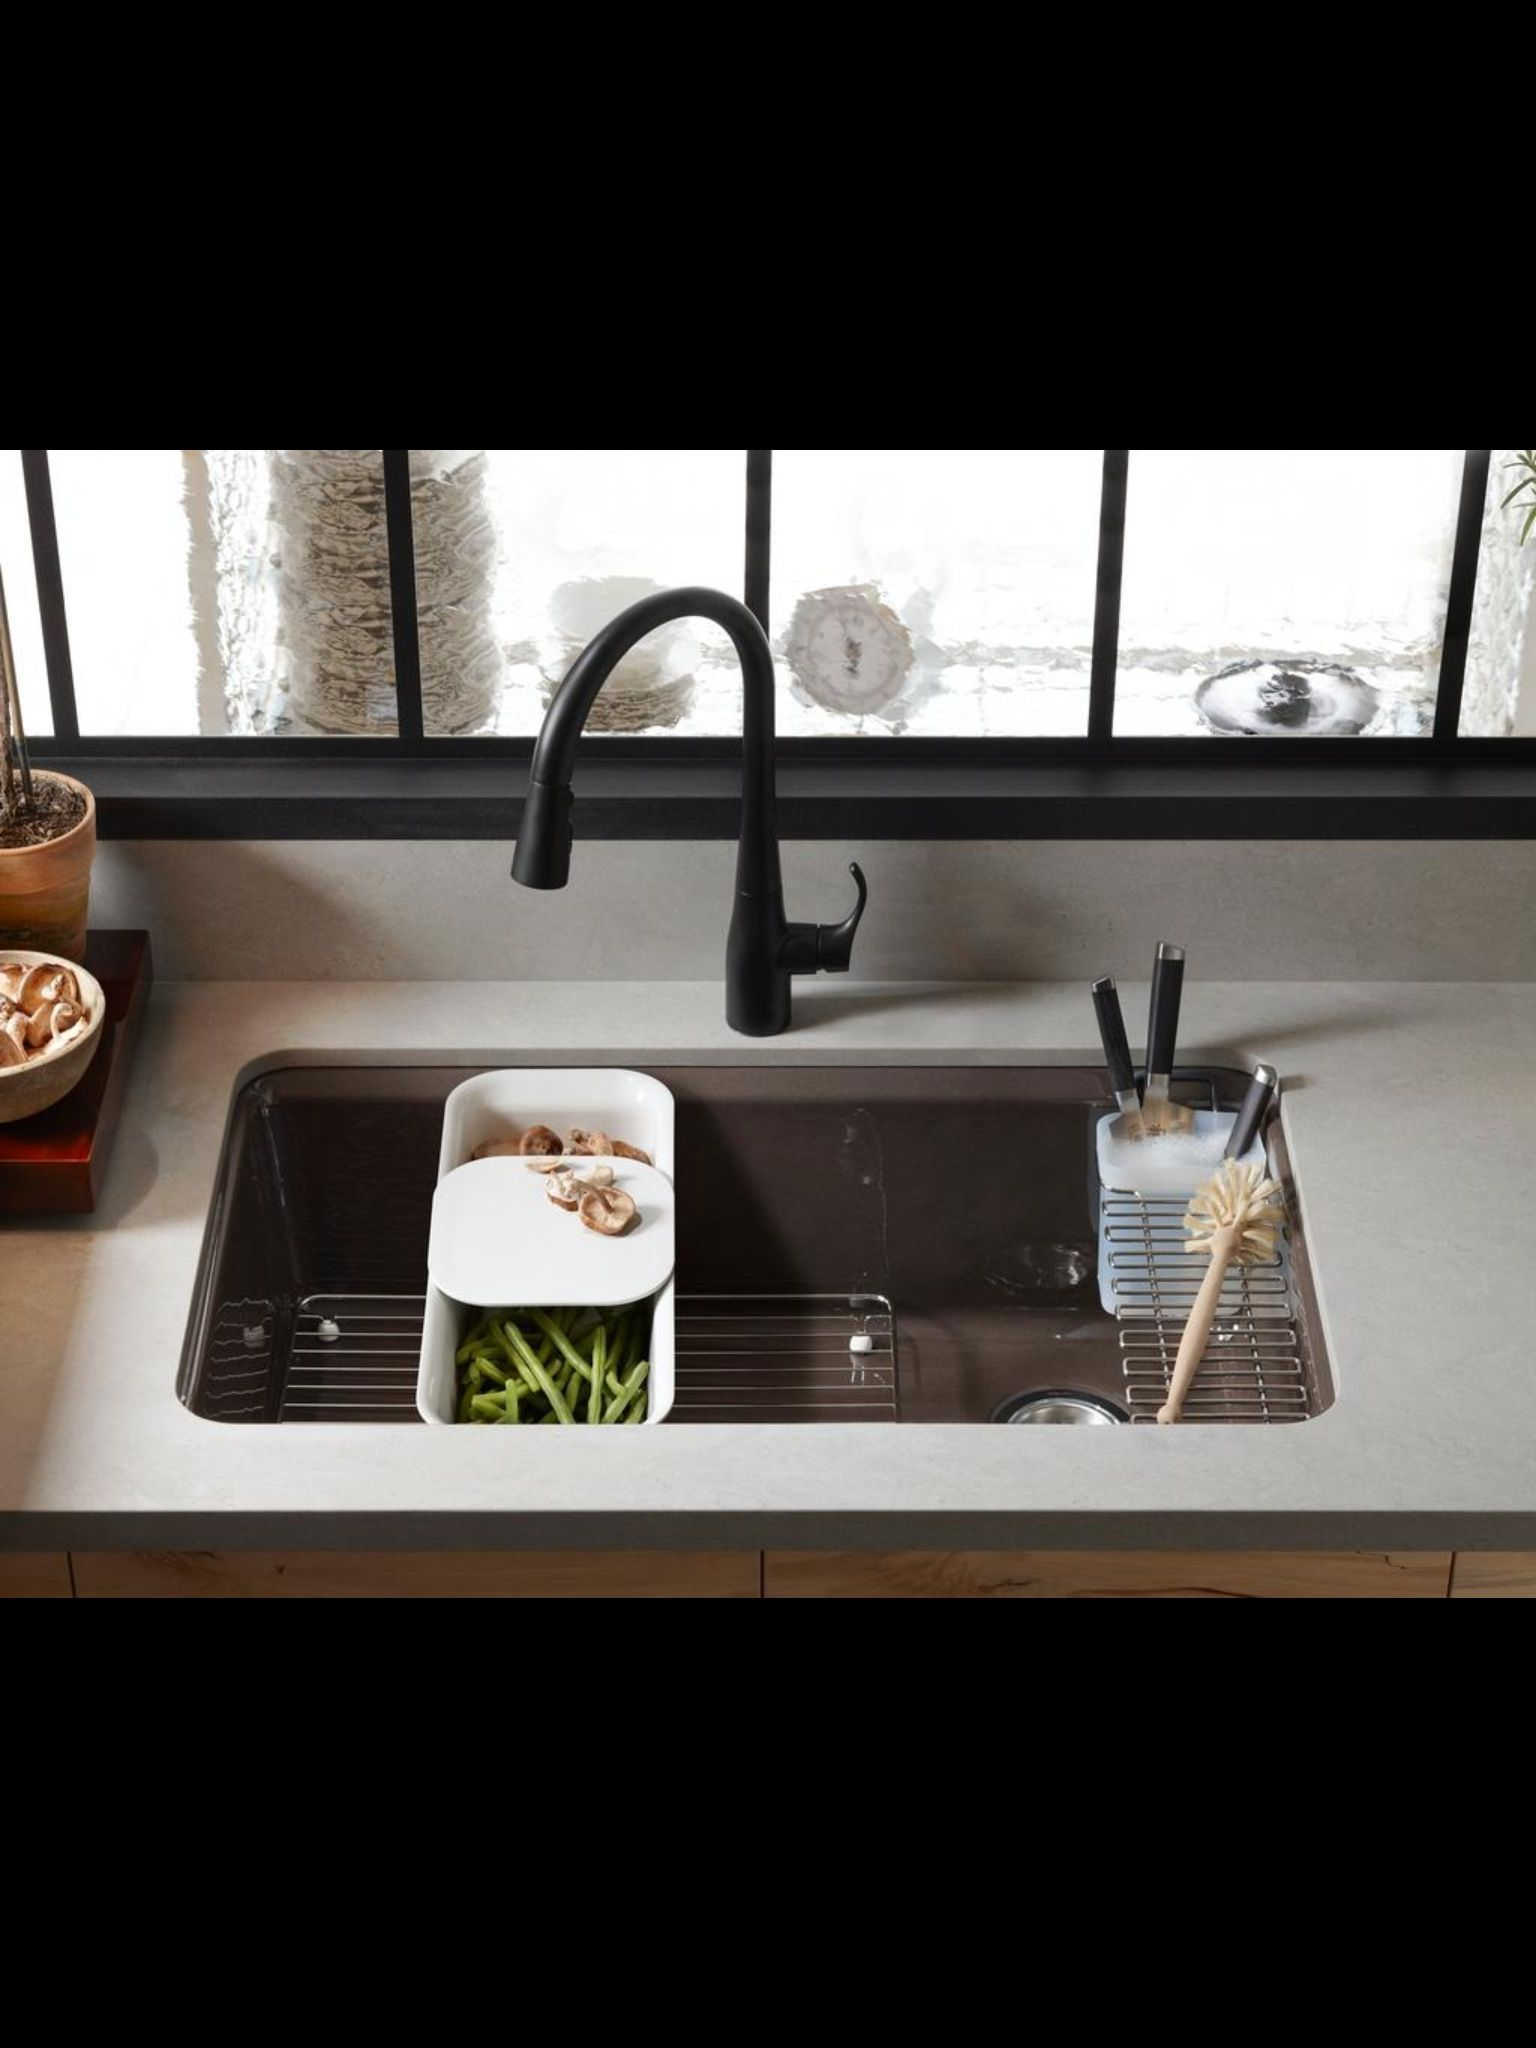 Interesting Solution To Space In A Single Bowl Sink Kitchen Sink Kohler  Rosaaen Like This